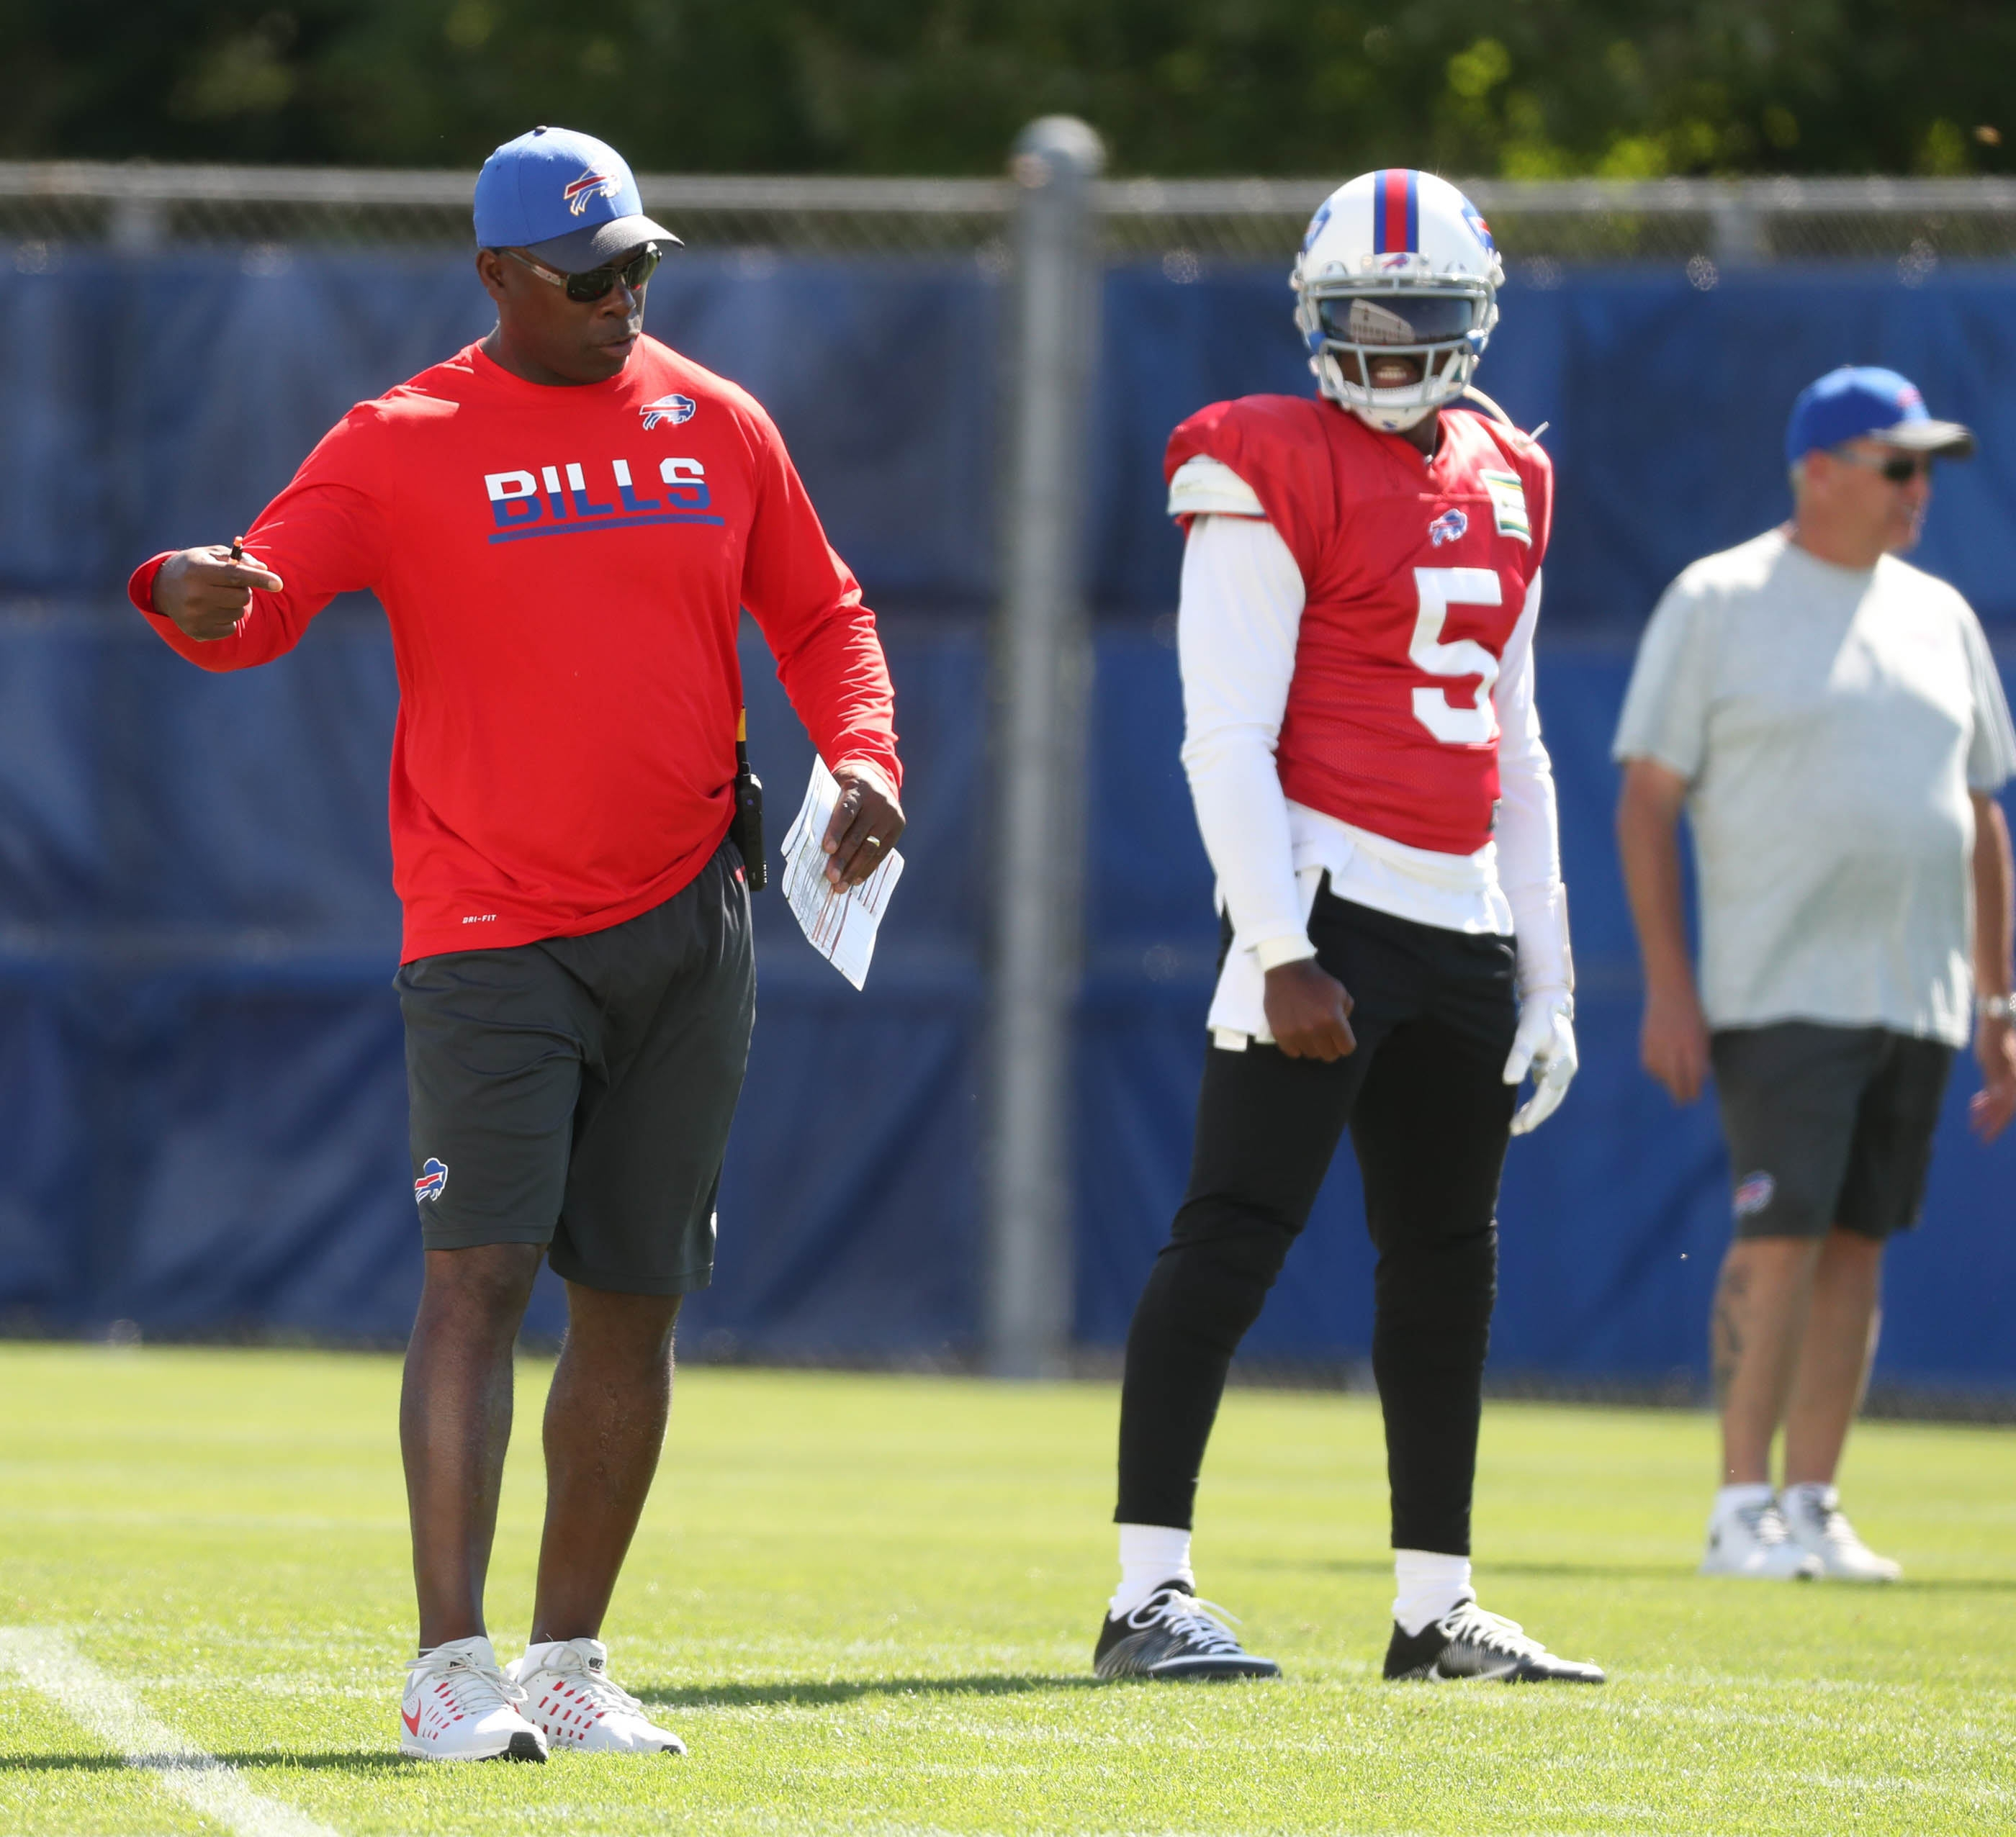 New offensive coordinator Anthony Lynn takes over under challenging circumstances. (James P. McCoy/Buffalo News)